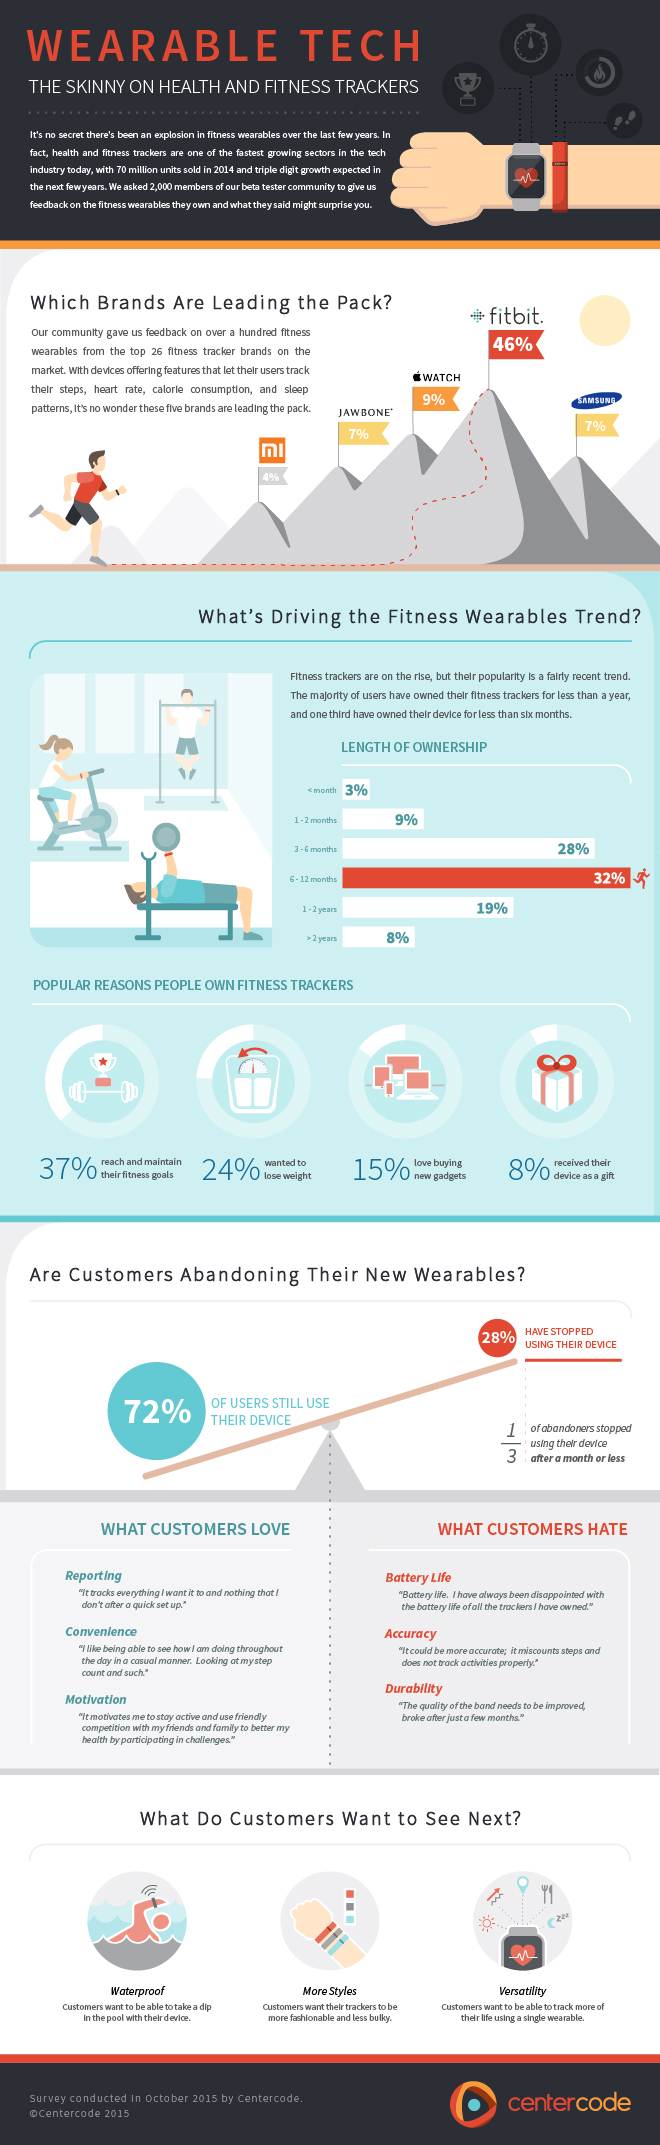 Centercode Health and Fitness Wearables Infographic